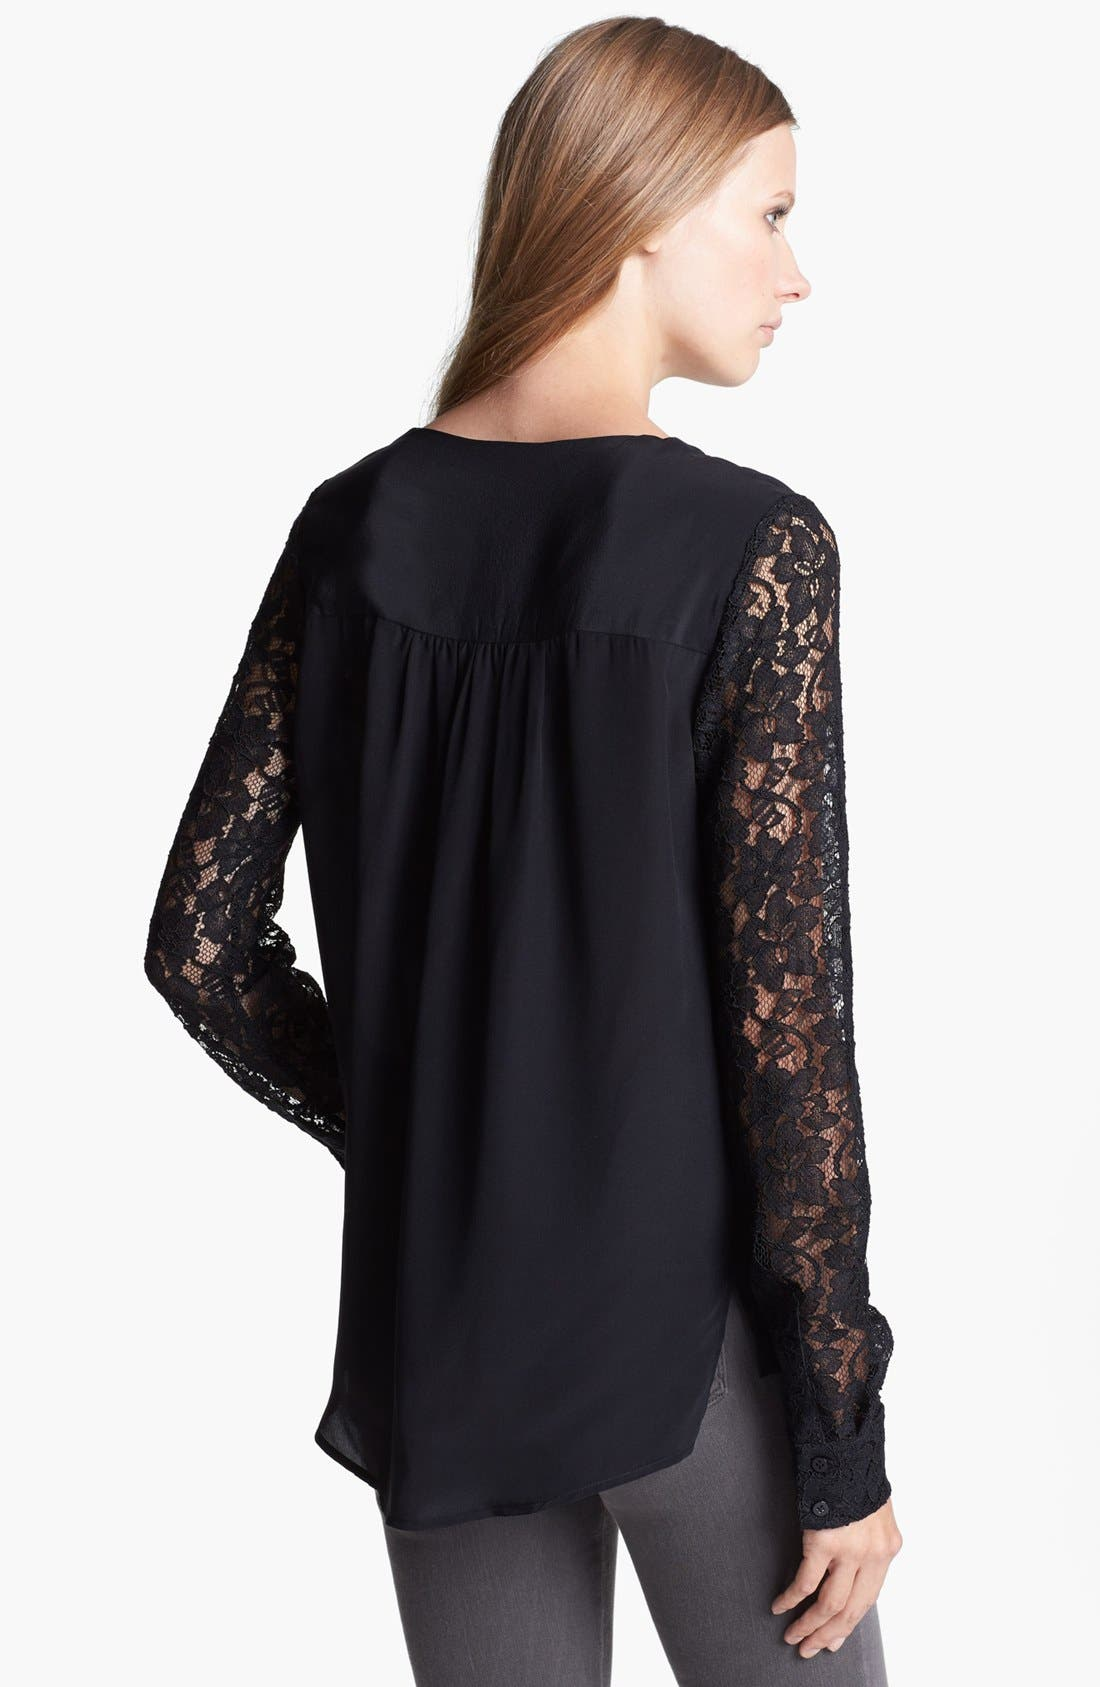 DIANE VON FURSTENBERG, 'Louisa' Lace Sleeve Silk Top, Alternate thumbnail 2, color, 001